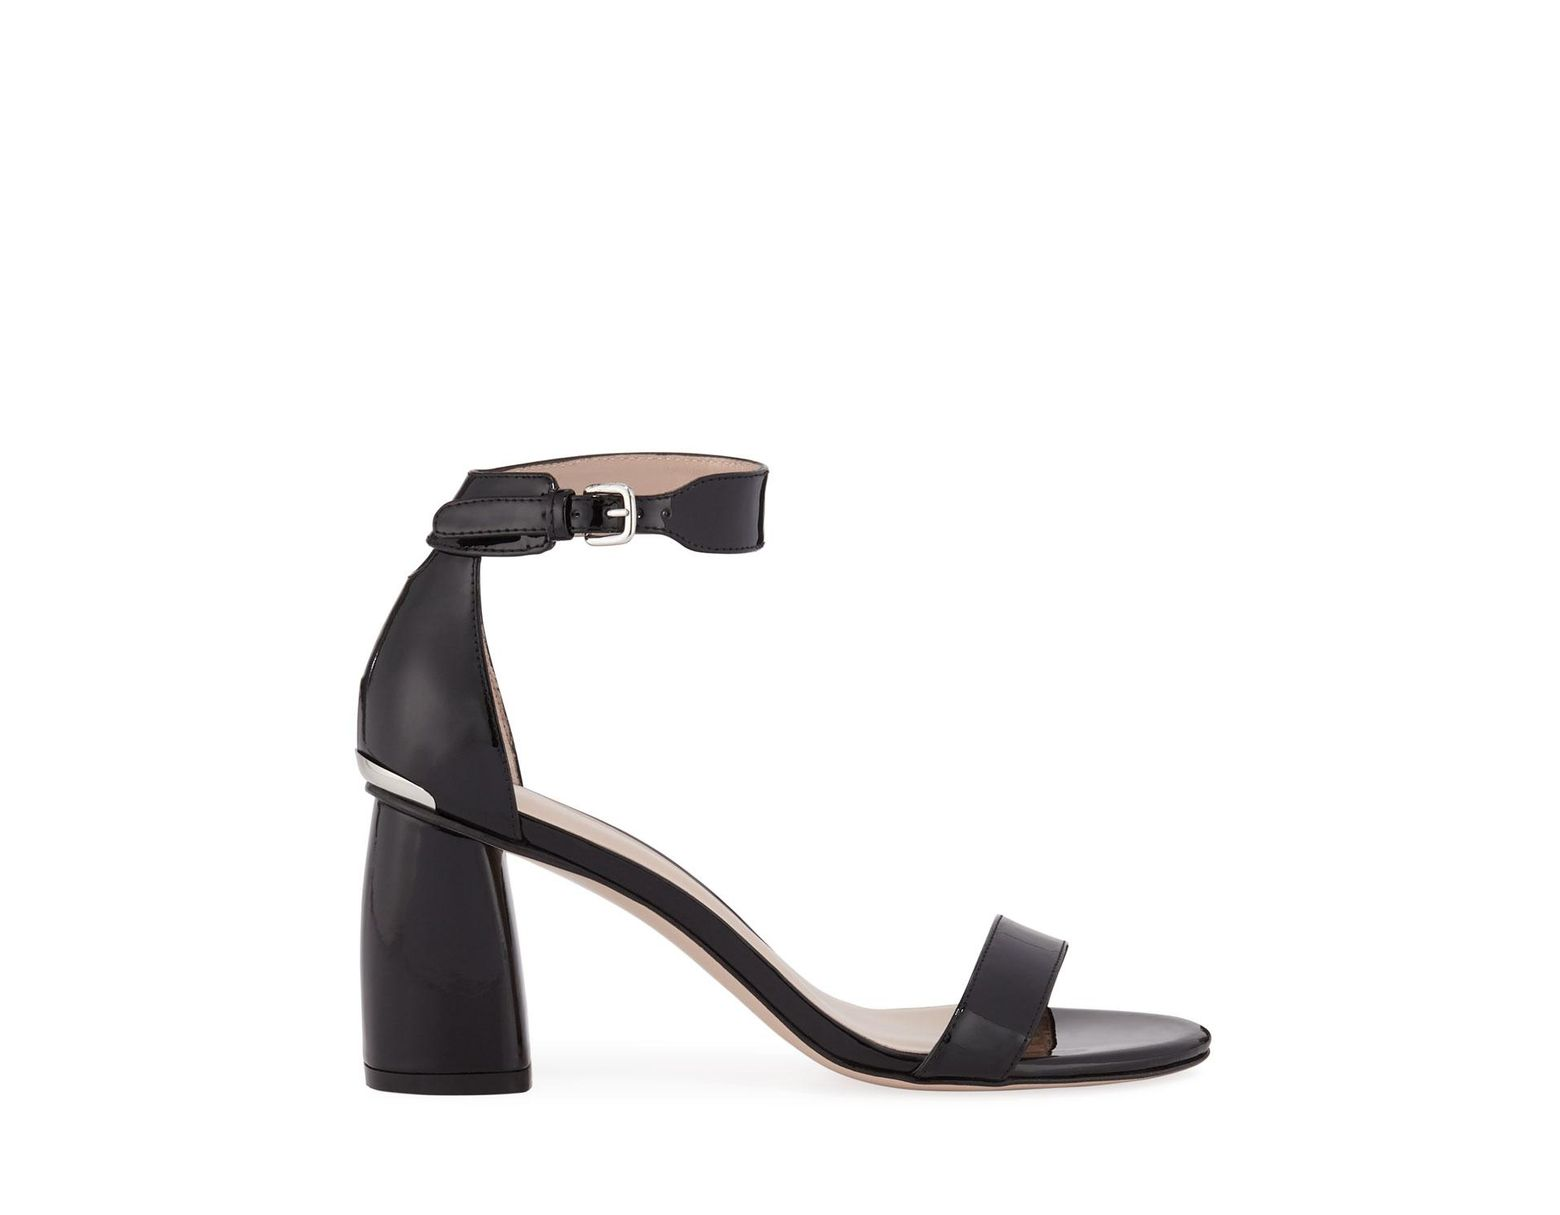 Ankle Black Sandals Strap Partlynude Patent Women's BQrCeWdxo